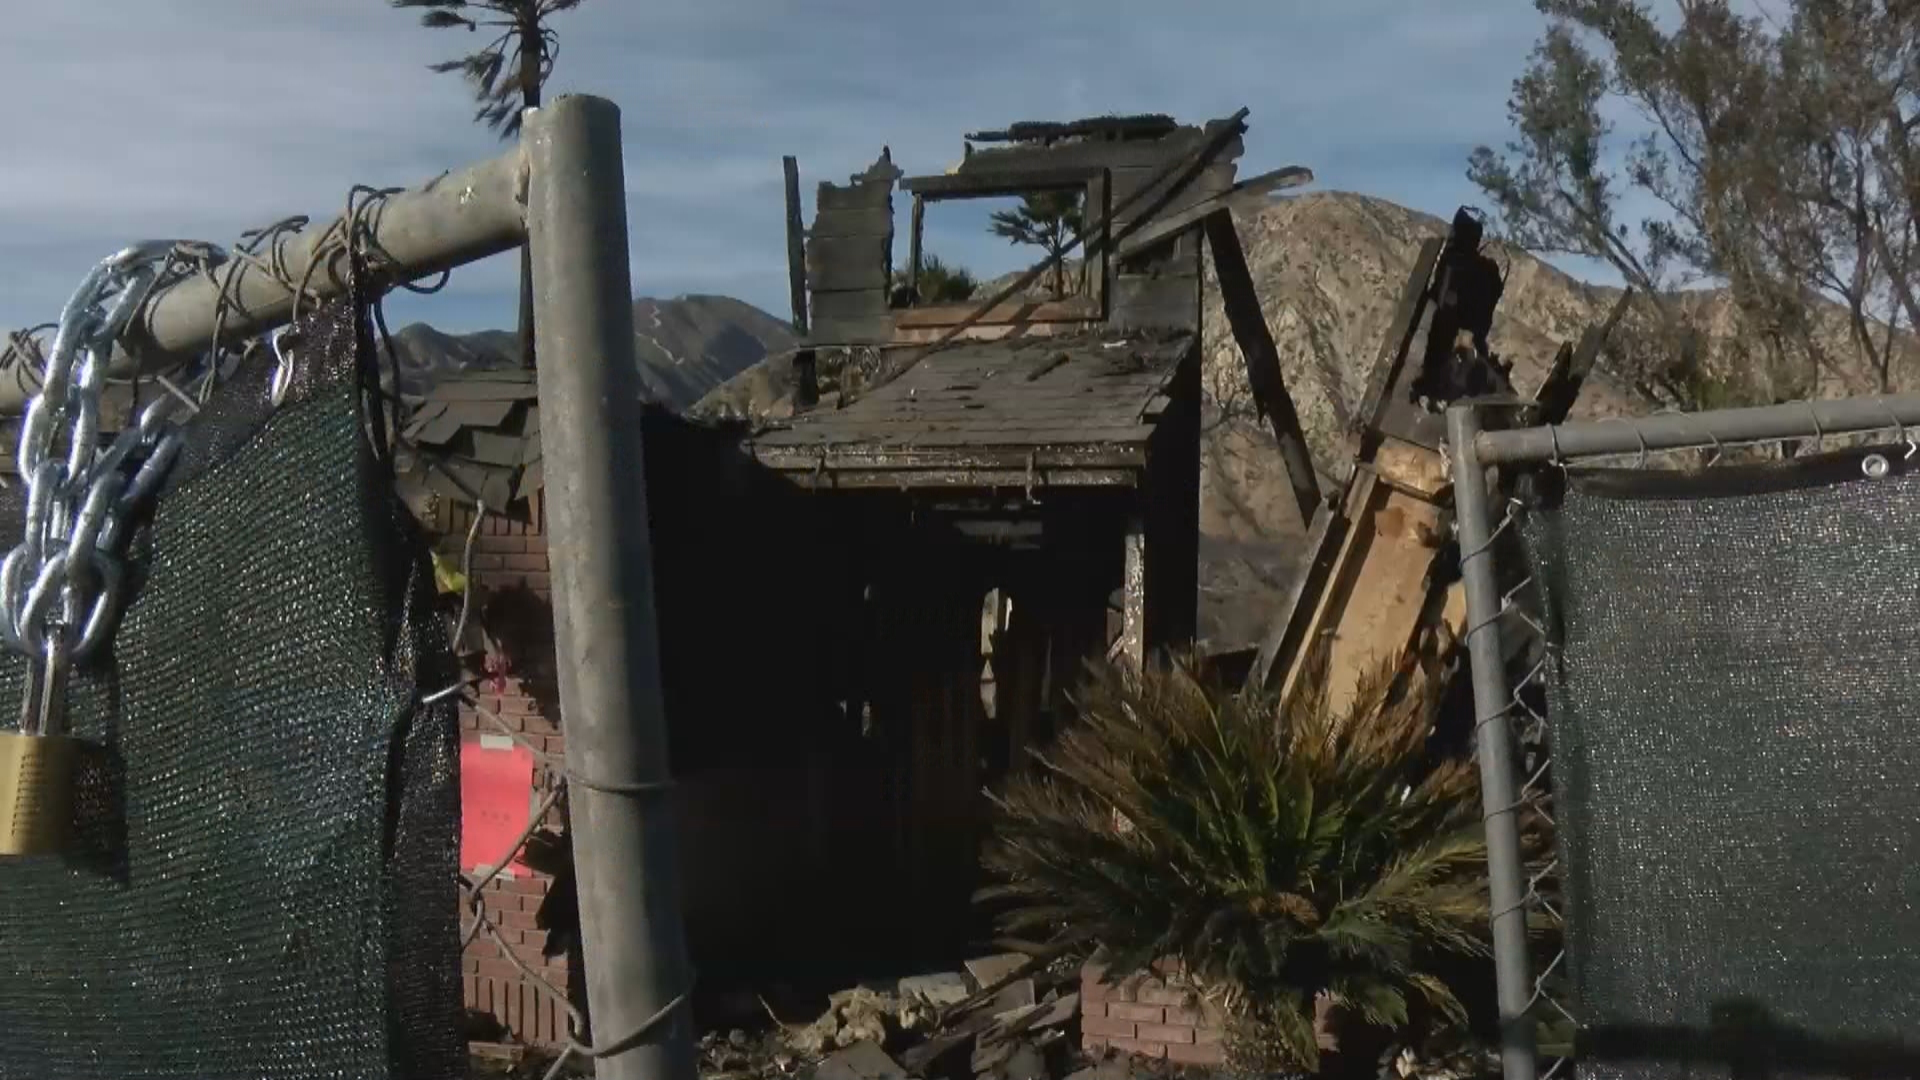 The Creek Fire has been blamed for destroying at least 56 homes, including this one in Sylmar, Calif. (George Romero/KSNV)